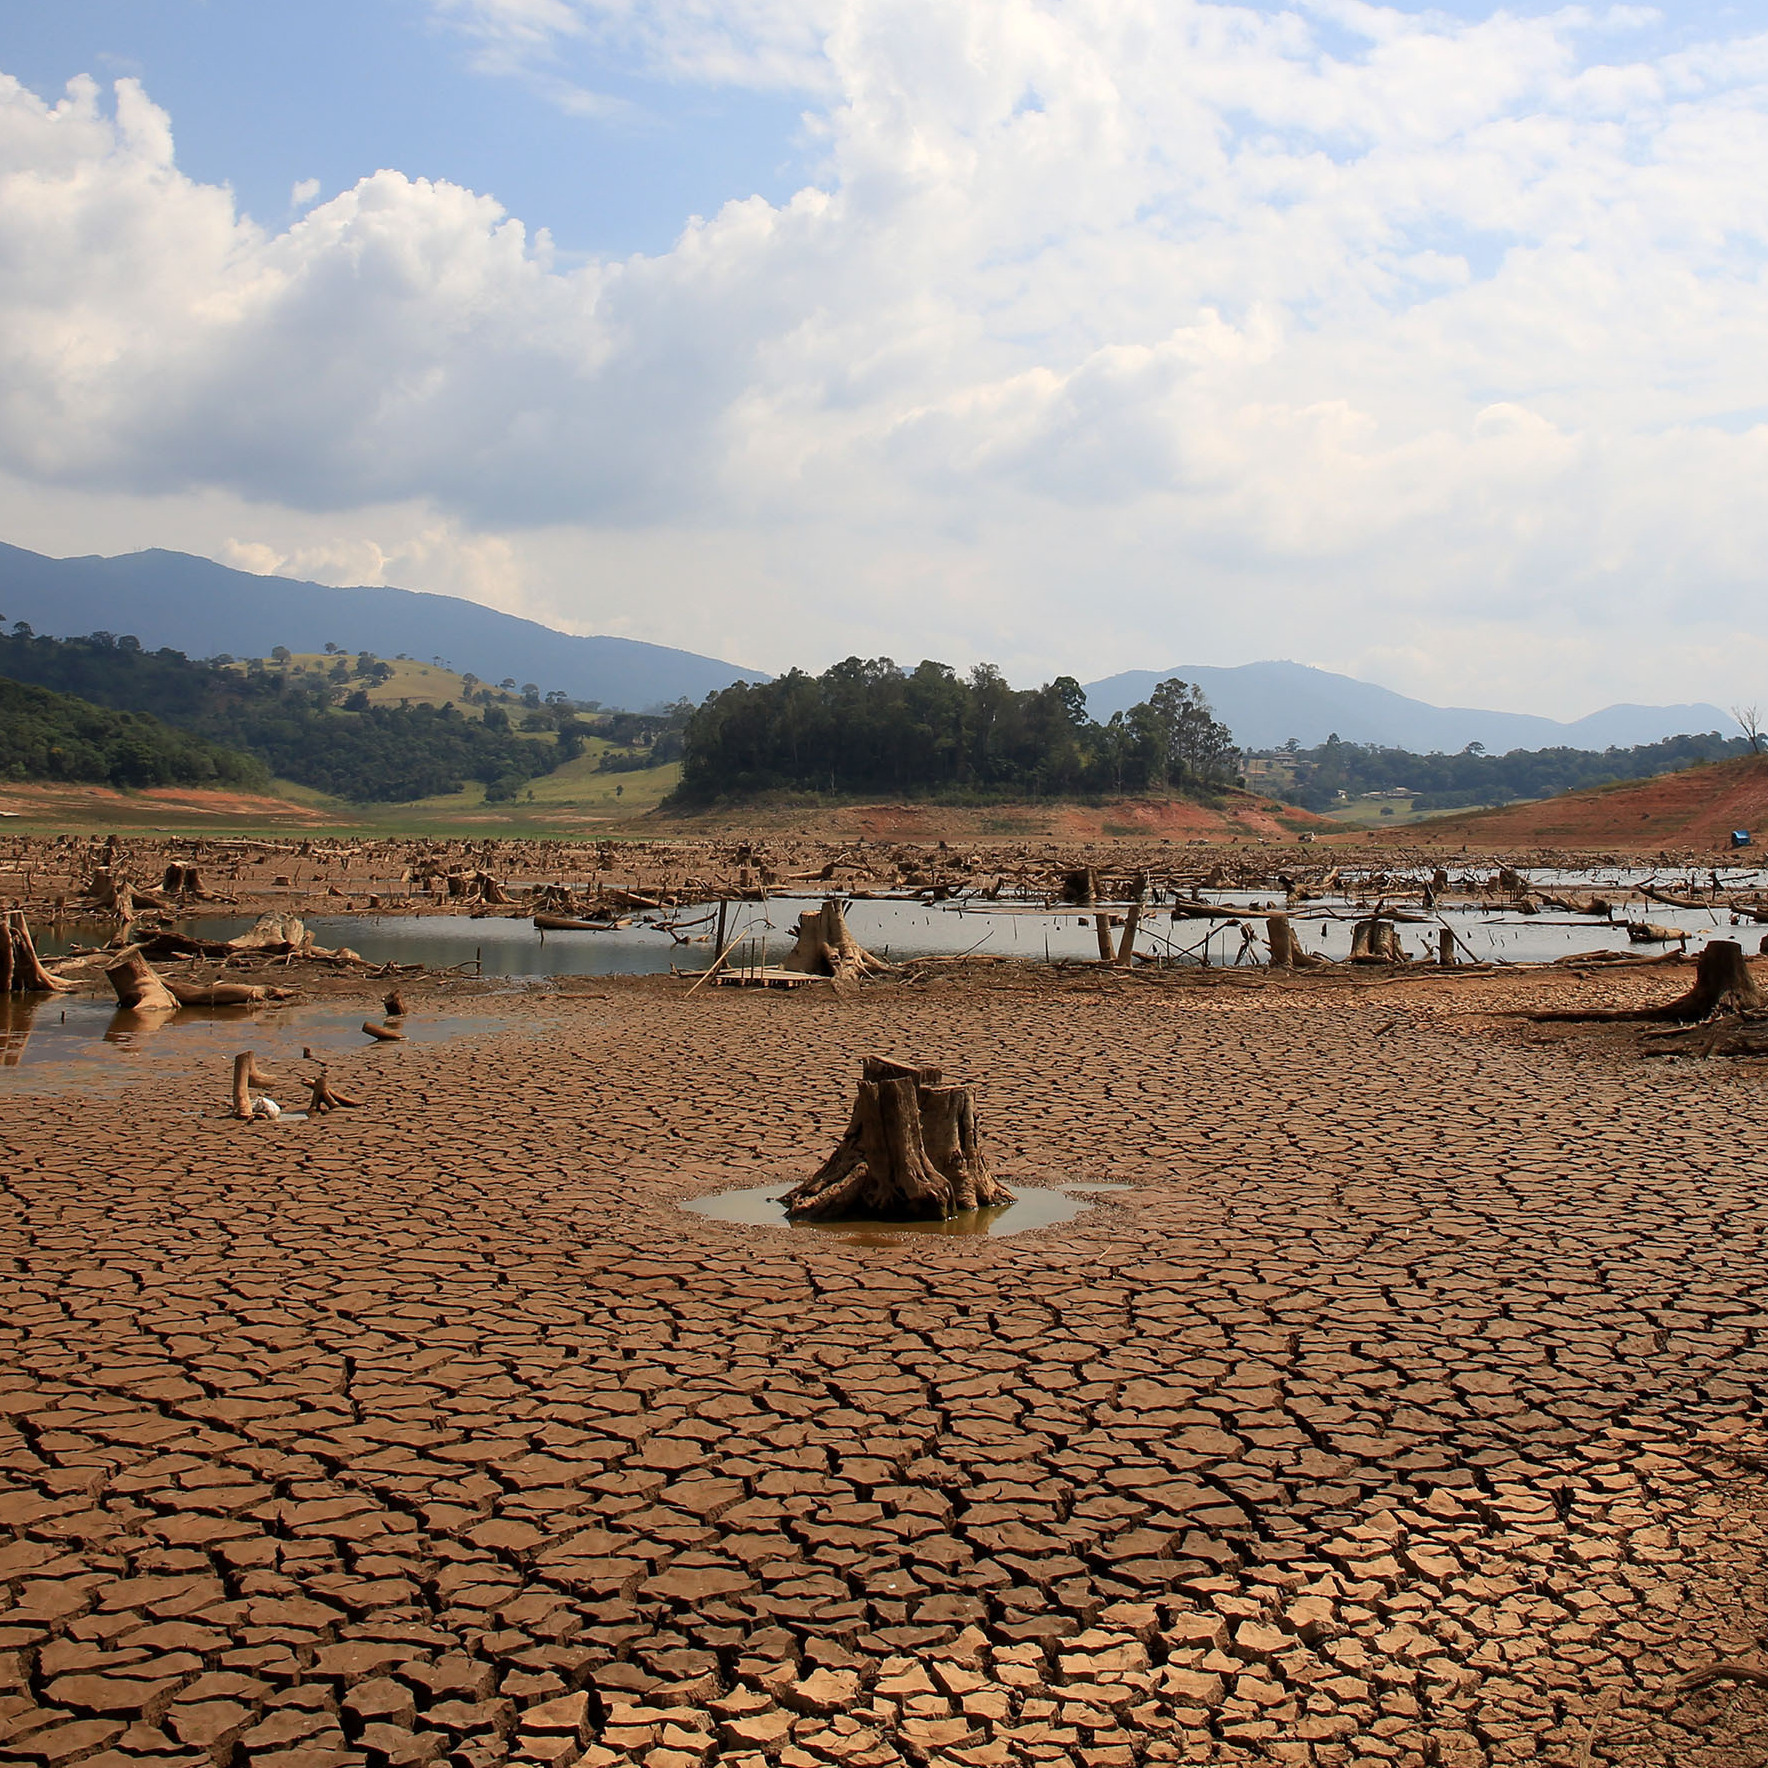 A view of drought-stricken Rio Jacarei in southeastern Brazil, where water levels were at the lowest level since 1974.